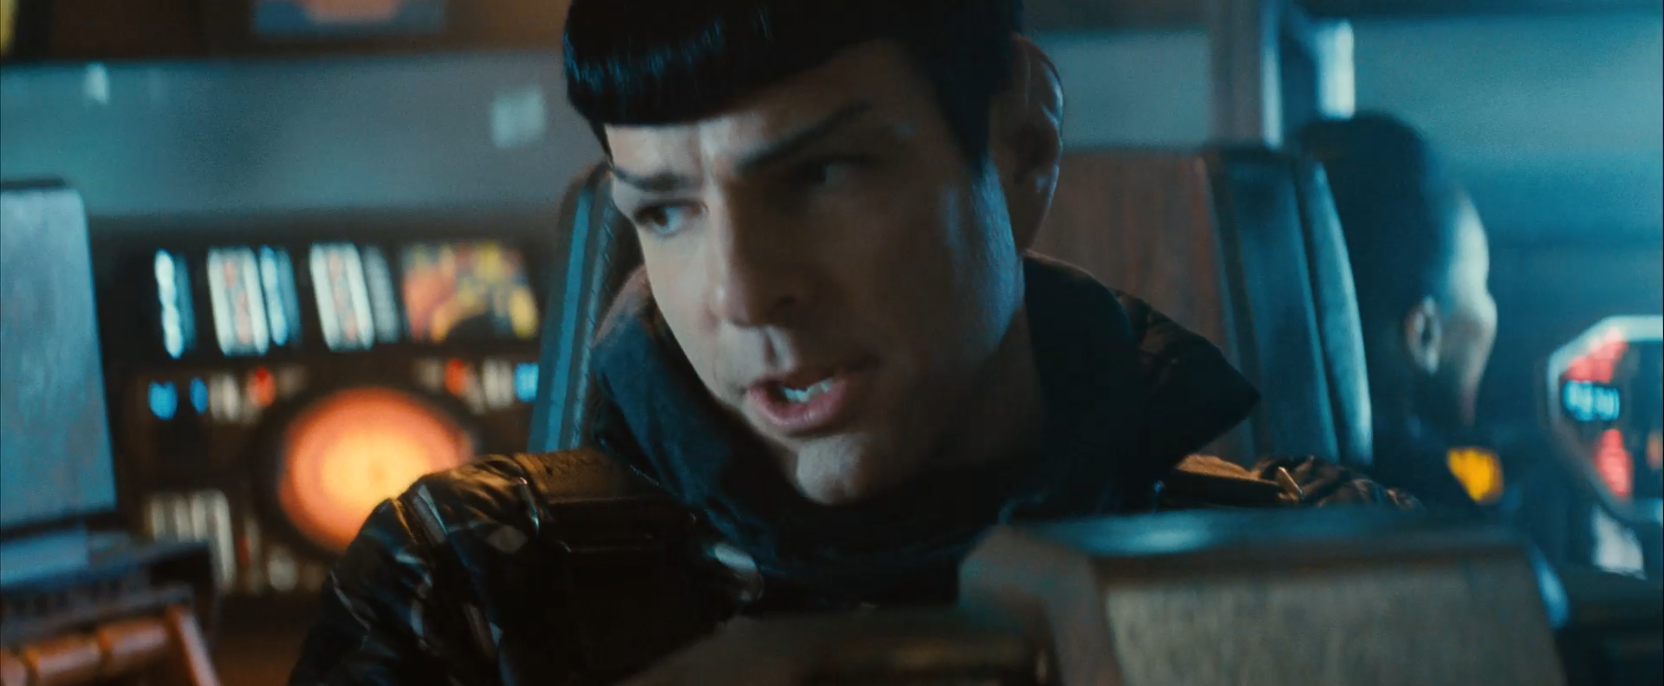 Zachary Quinto as Spock in Star Trek Into Darkness